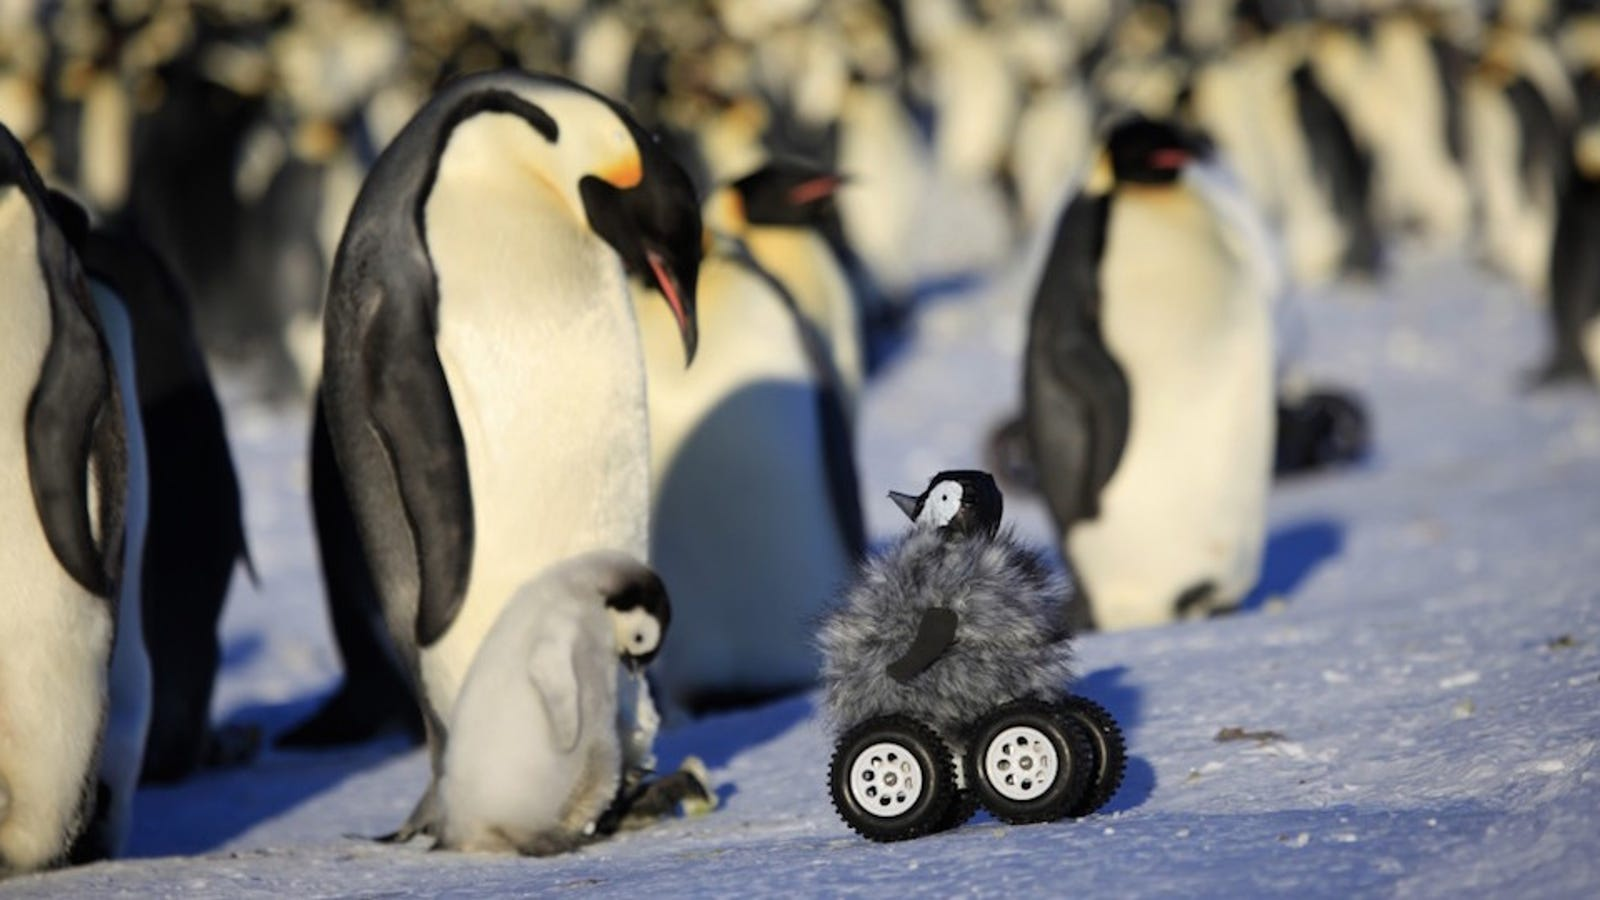 (Adorable Baby Robot Penguin) Big Brother Is Watching